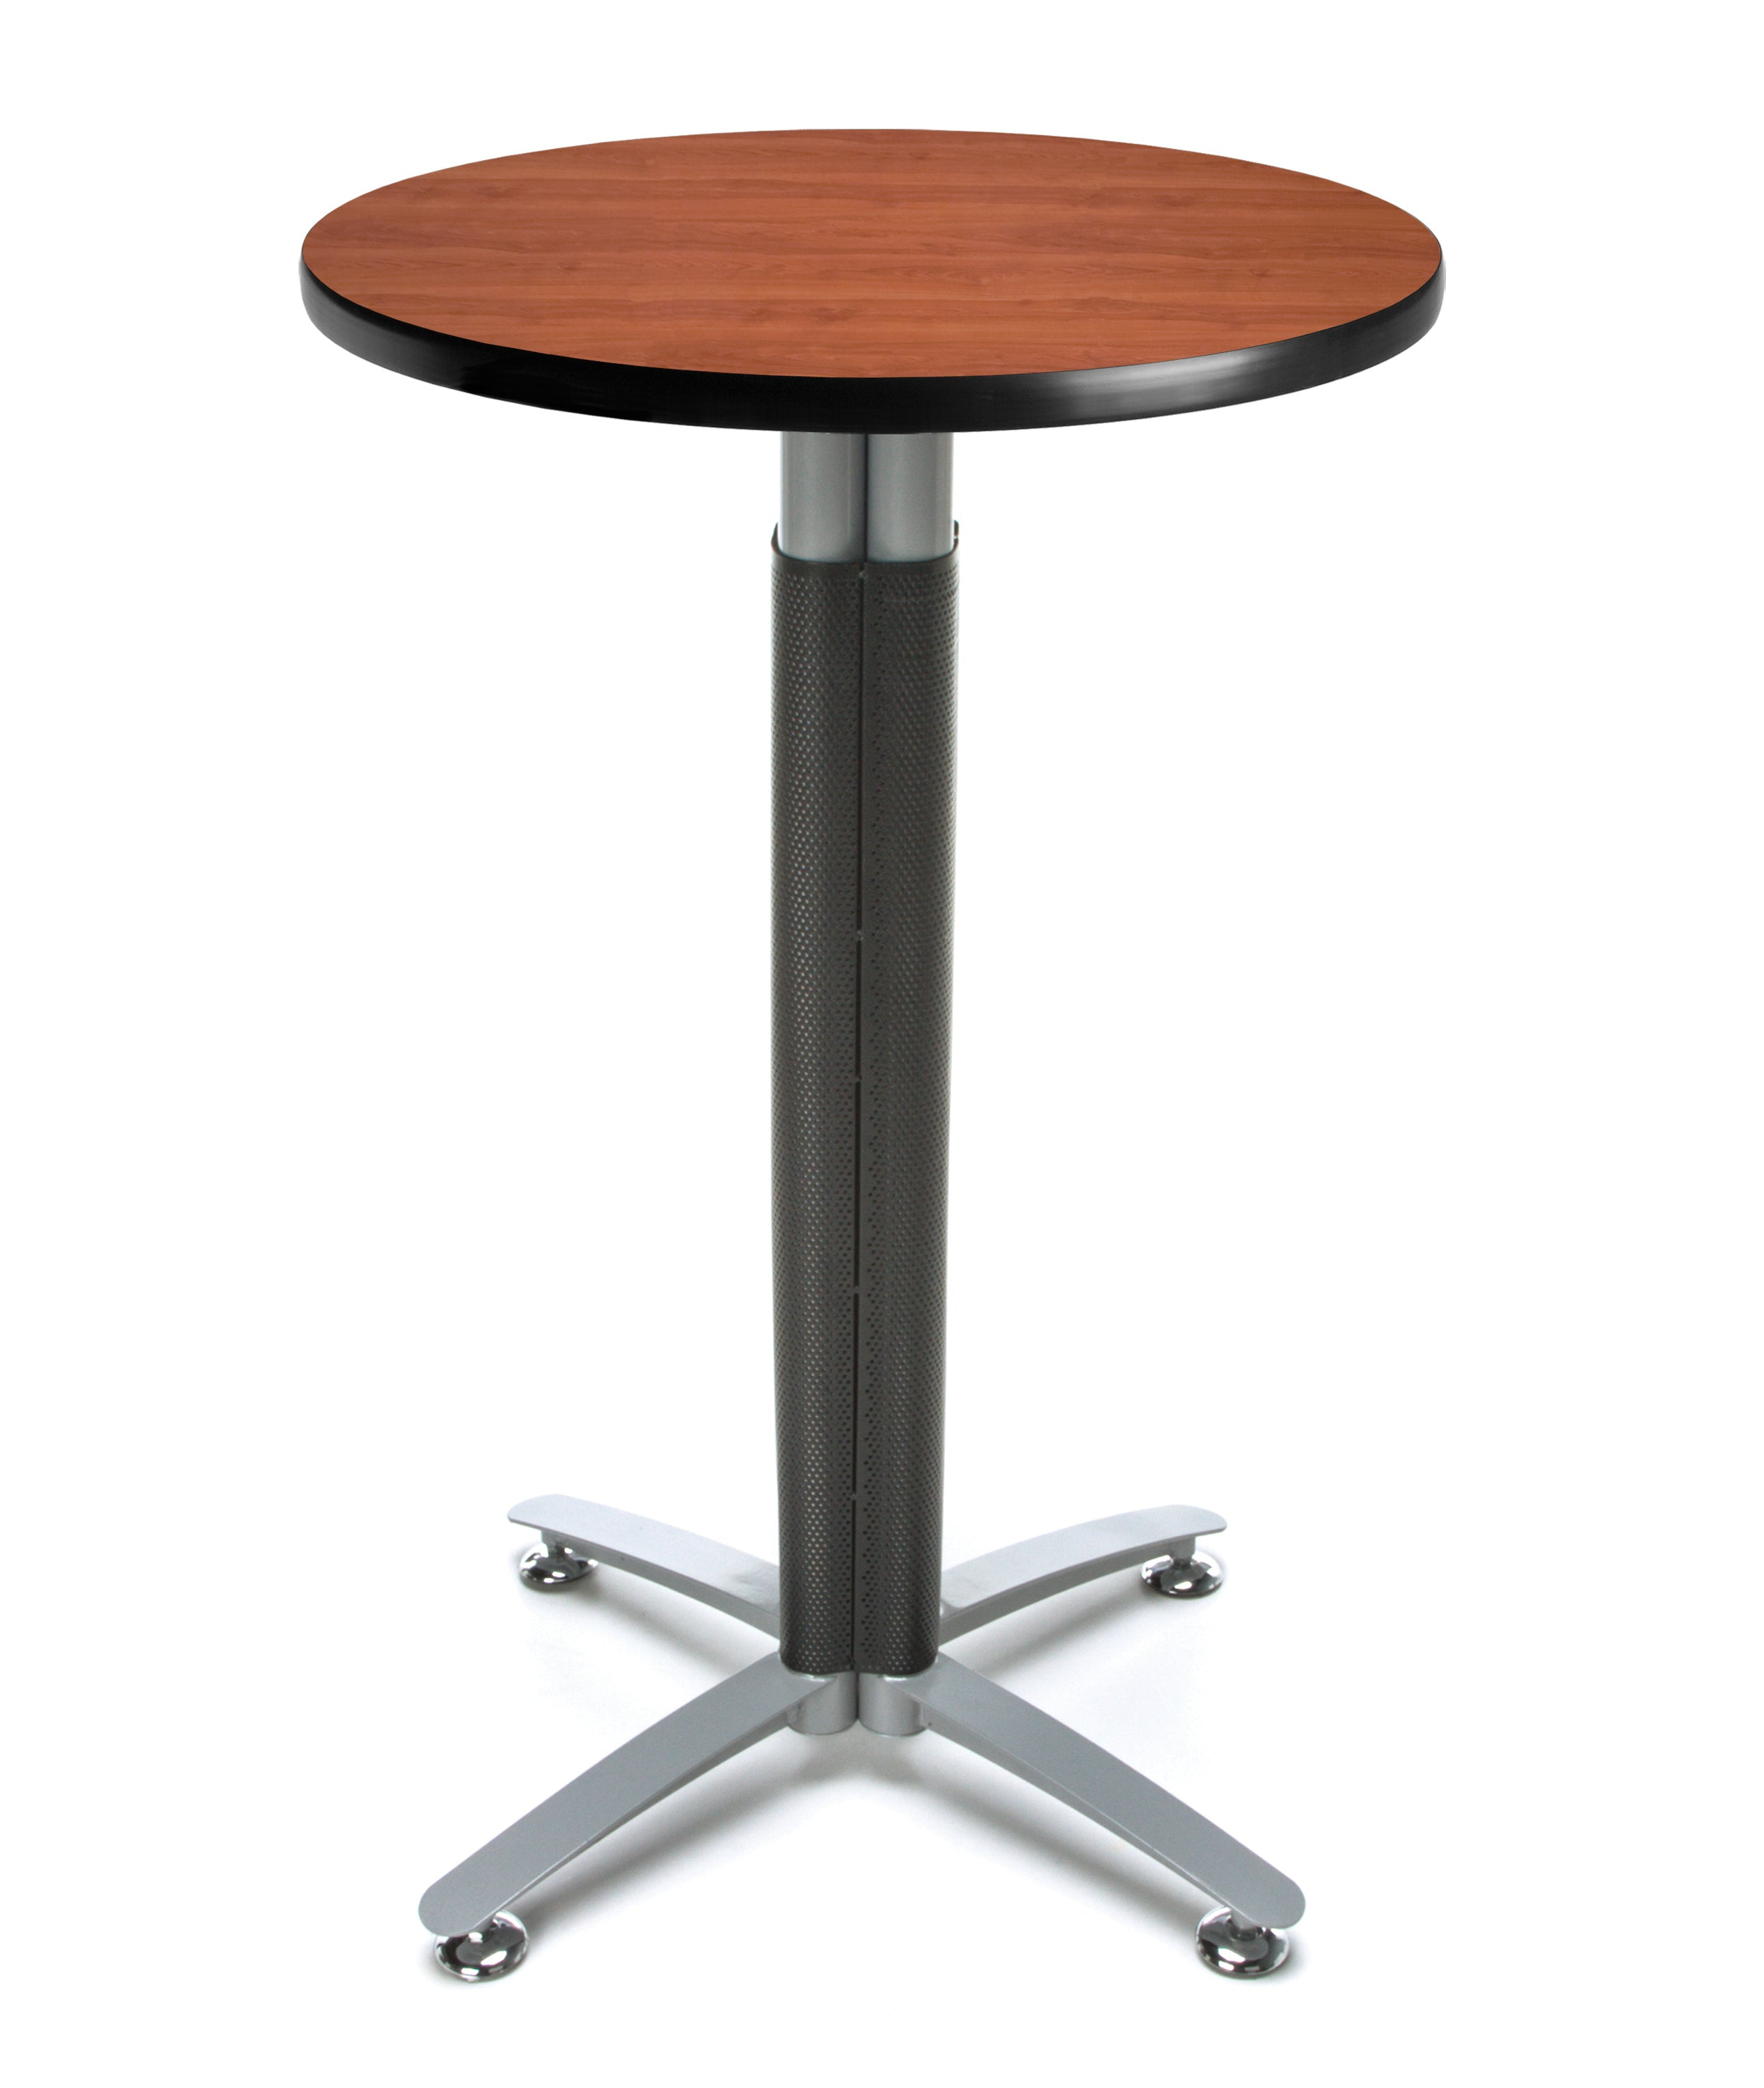 Ofminc Model CMT24RD 24 Inch Round Metal Mesh Base Cafe Table